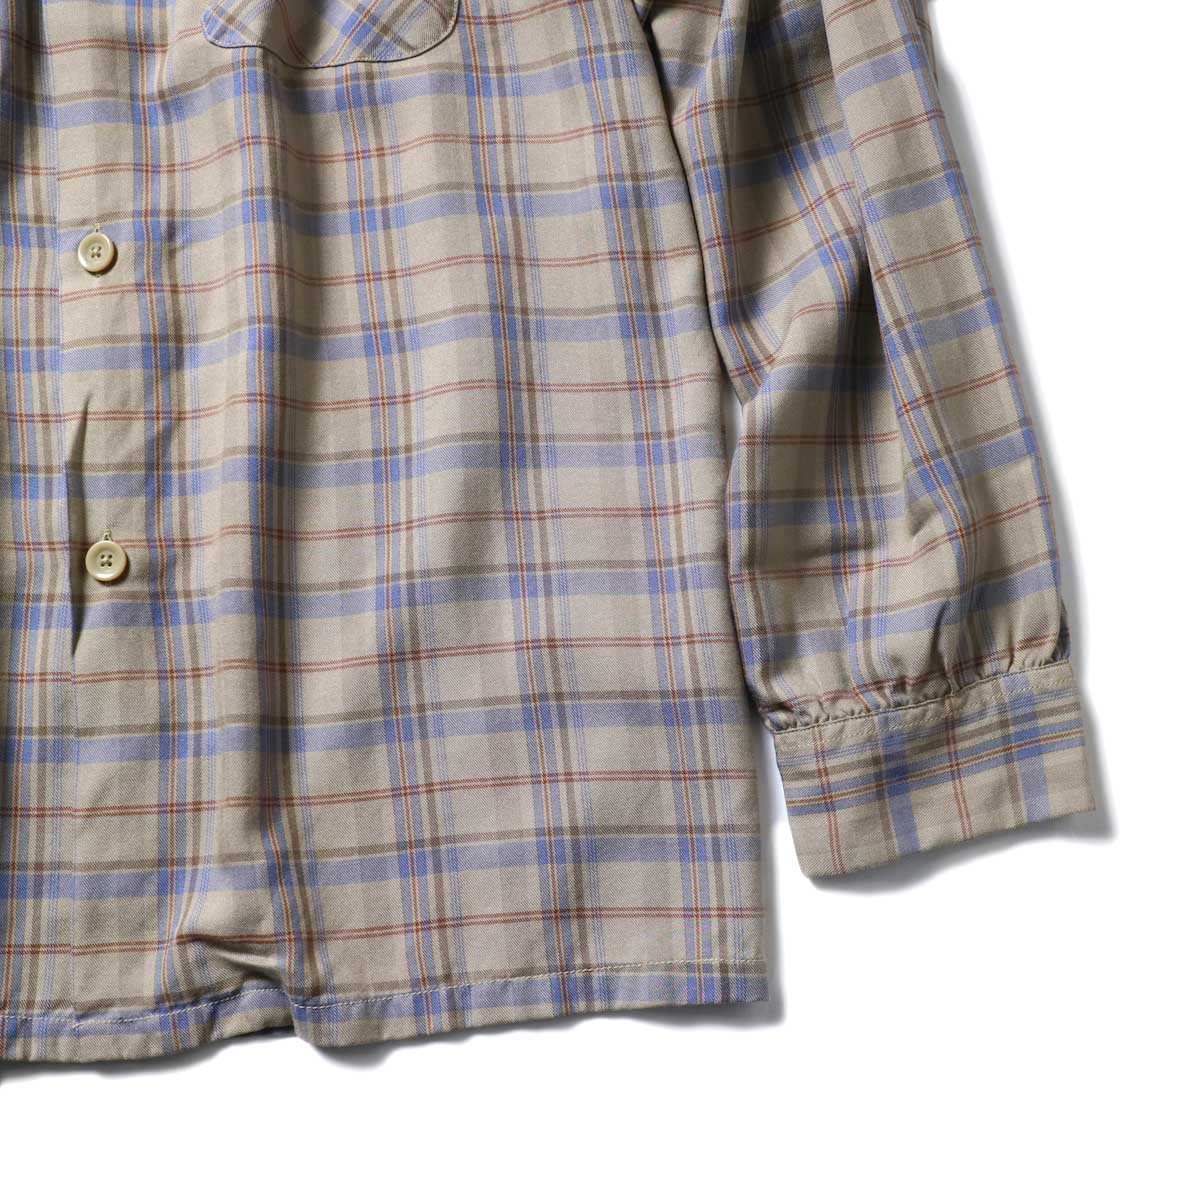 TOWN CRAFT / CLASSIC CHECK OPEN SHIRTS (Beige)袖、裾